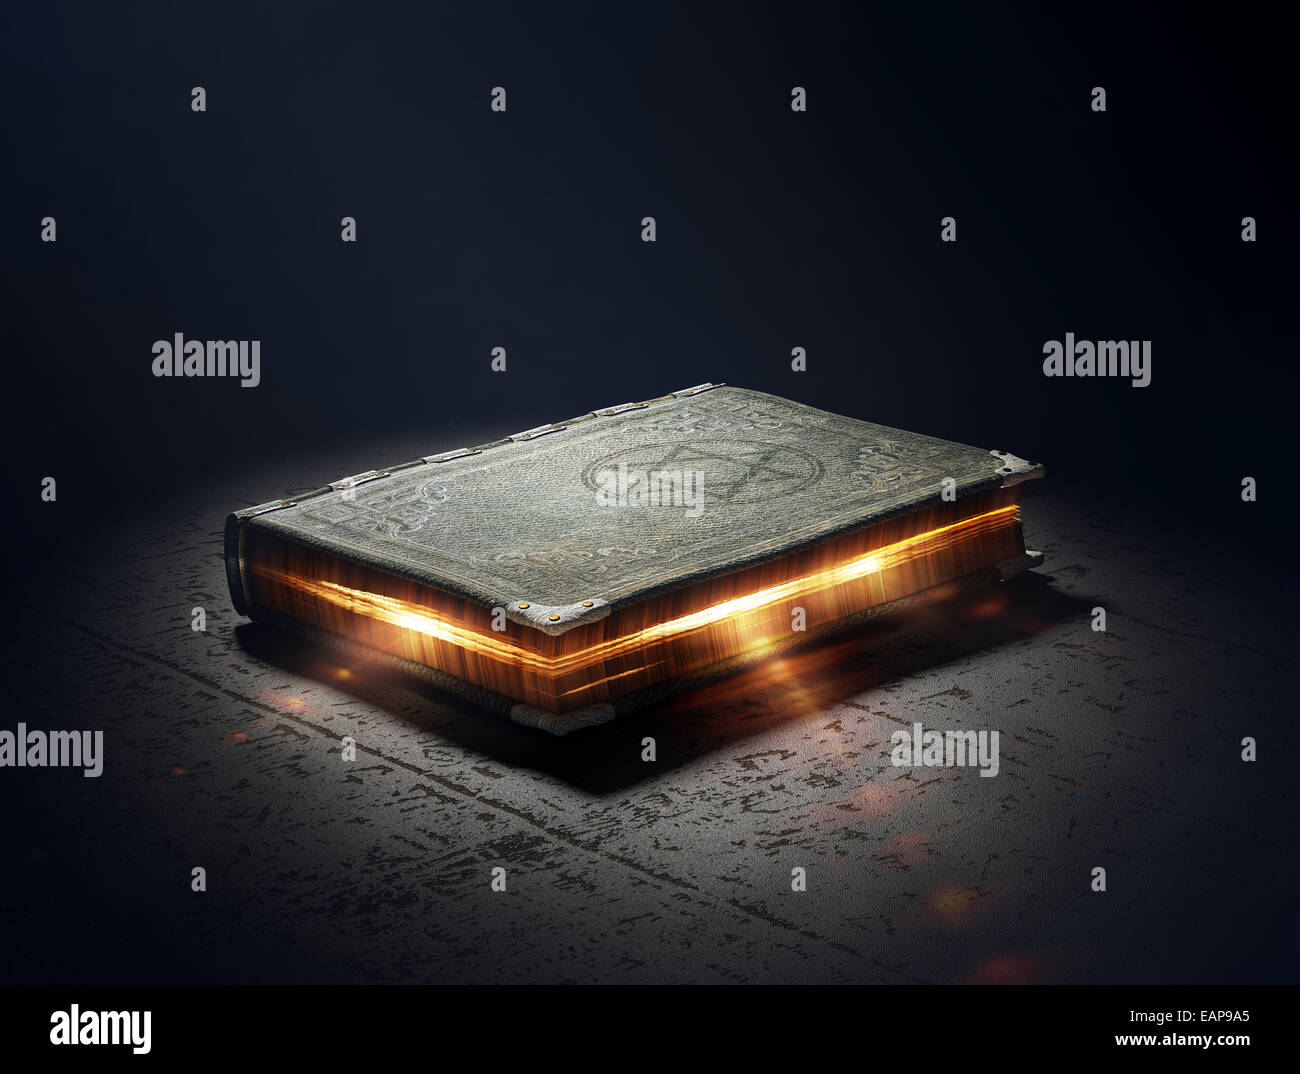 Magic Book with super powers - 3D Artwork - Stock Image